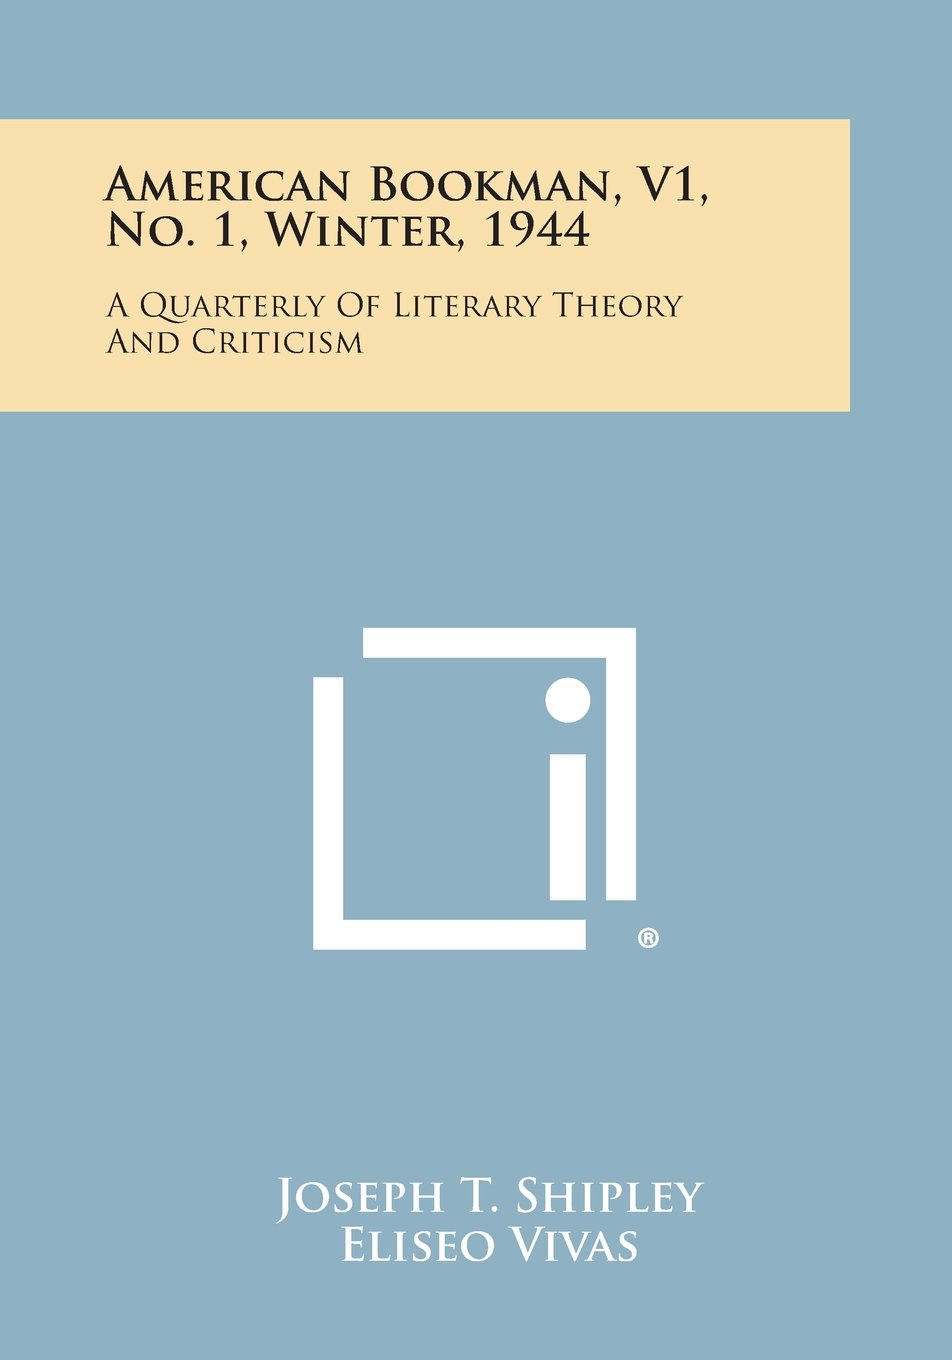 Download American Bookman, V1, No. 1, Winter, 1944: A Quarterly of Literary Theory and Criticism pdf